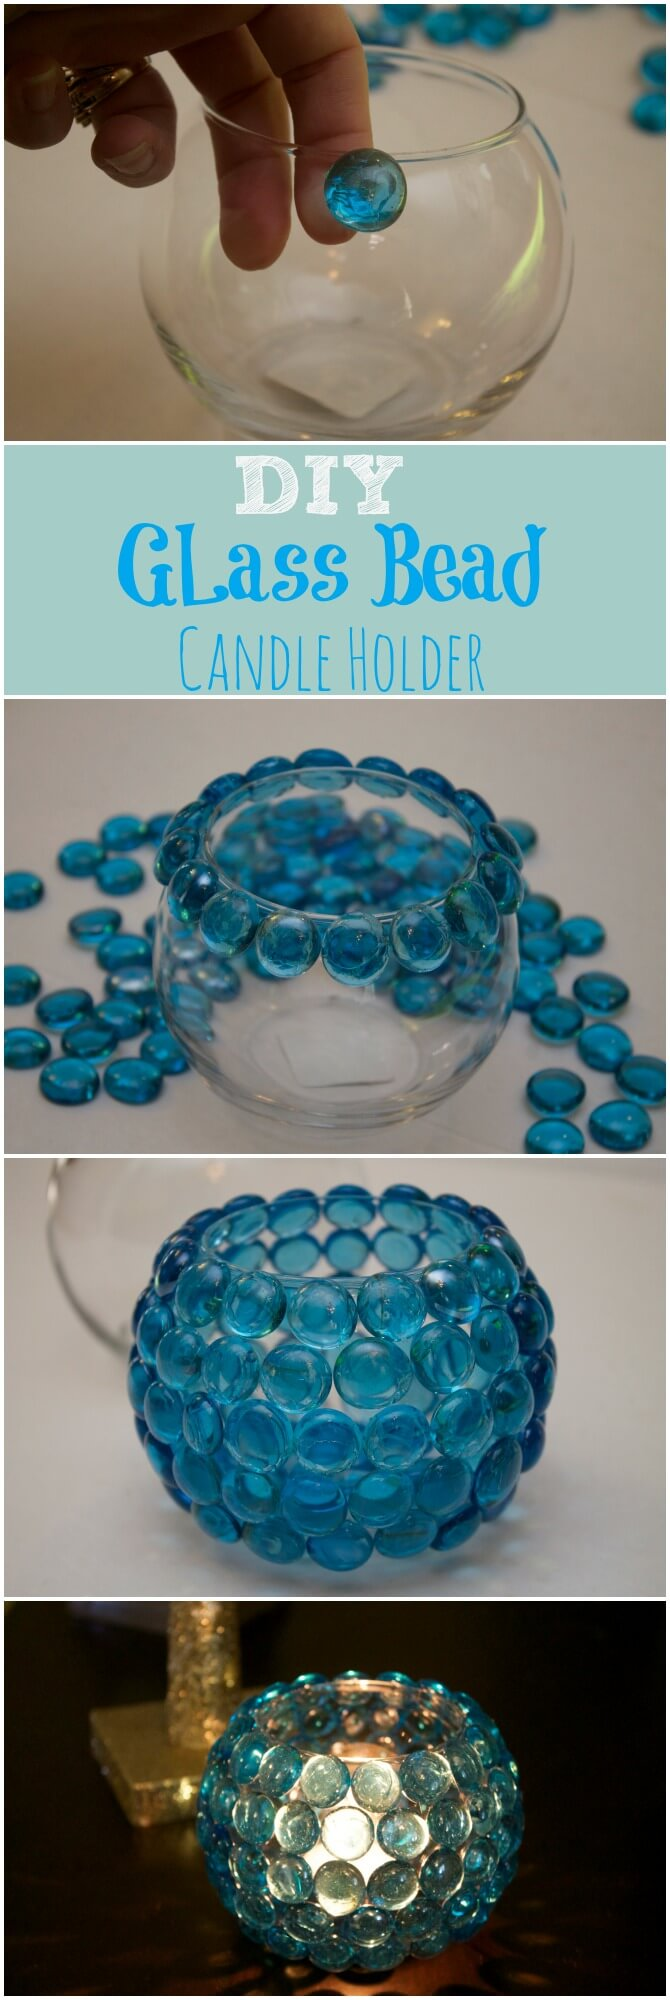 Candle Holder with Pretty Glass Gems